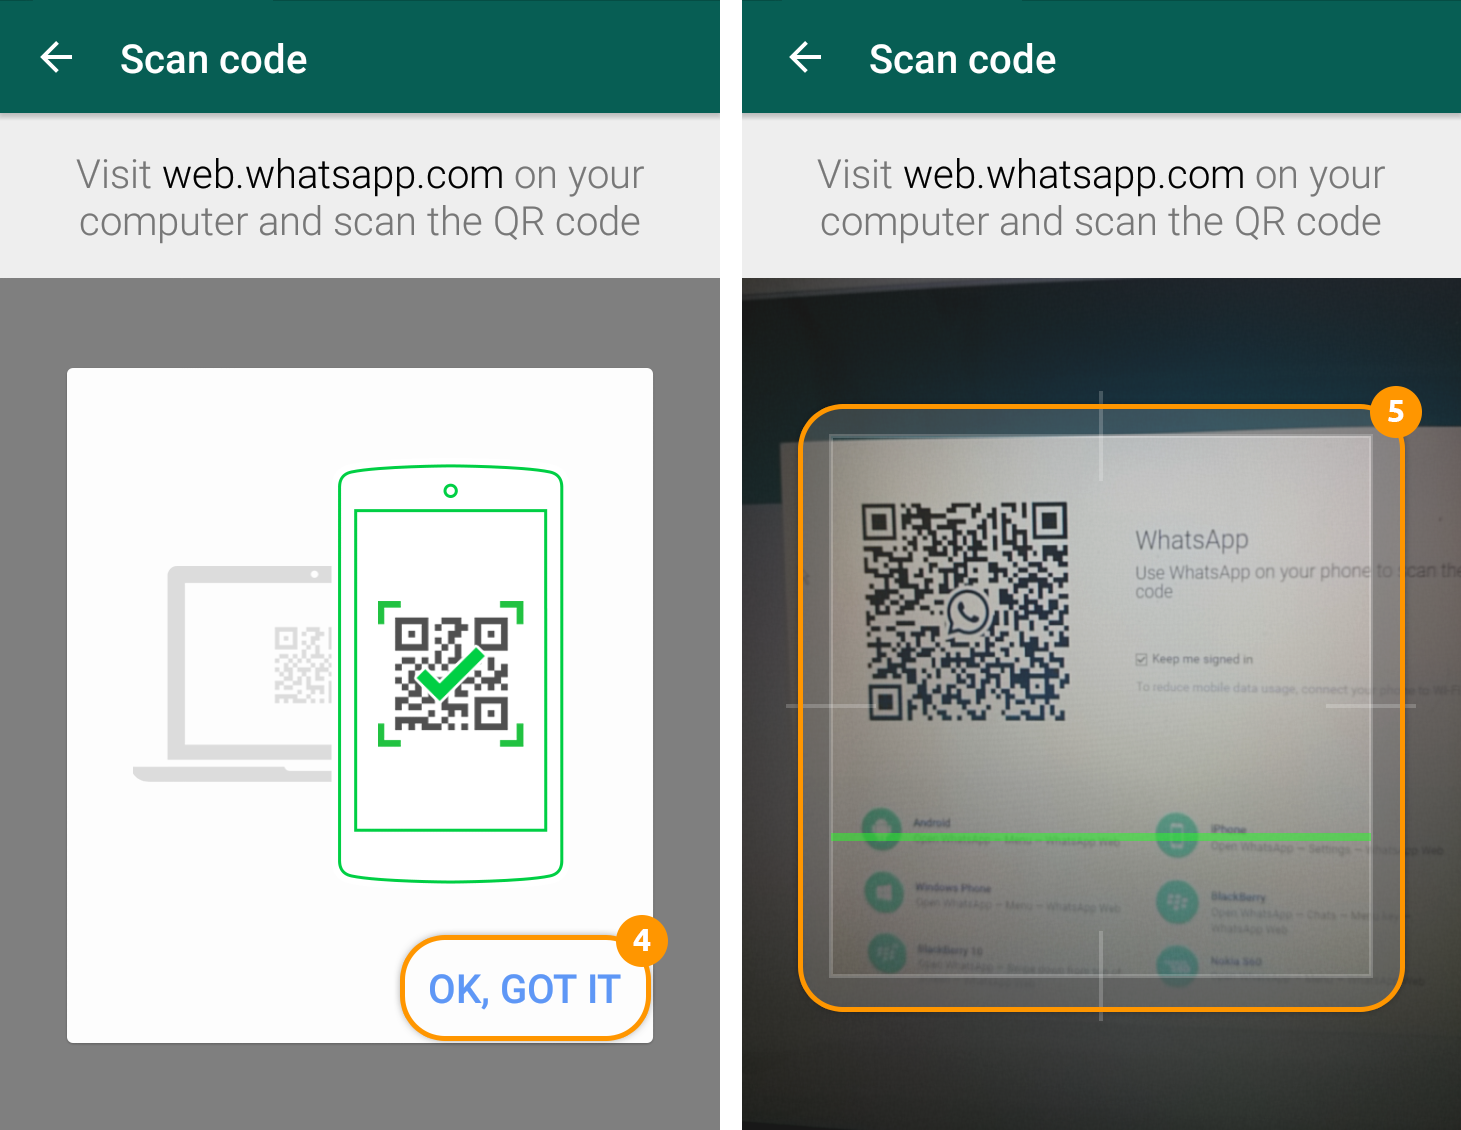 How to use Messengers: All Steps to access WhatsApp Web